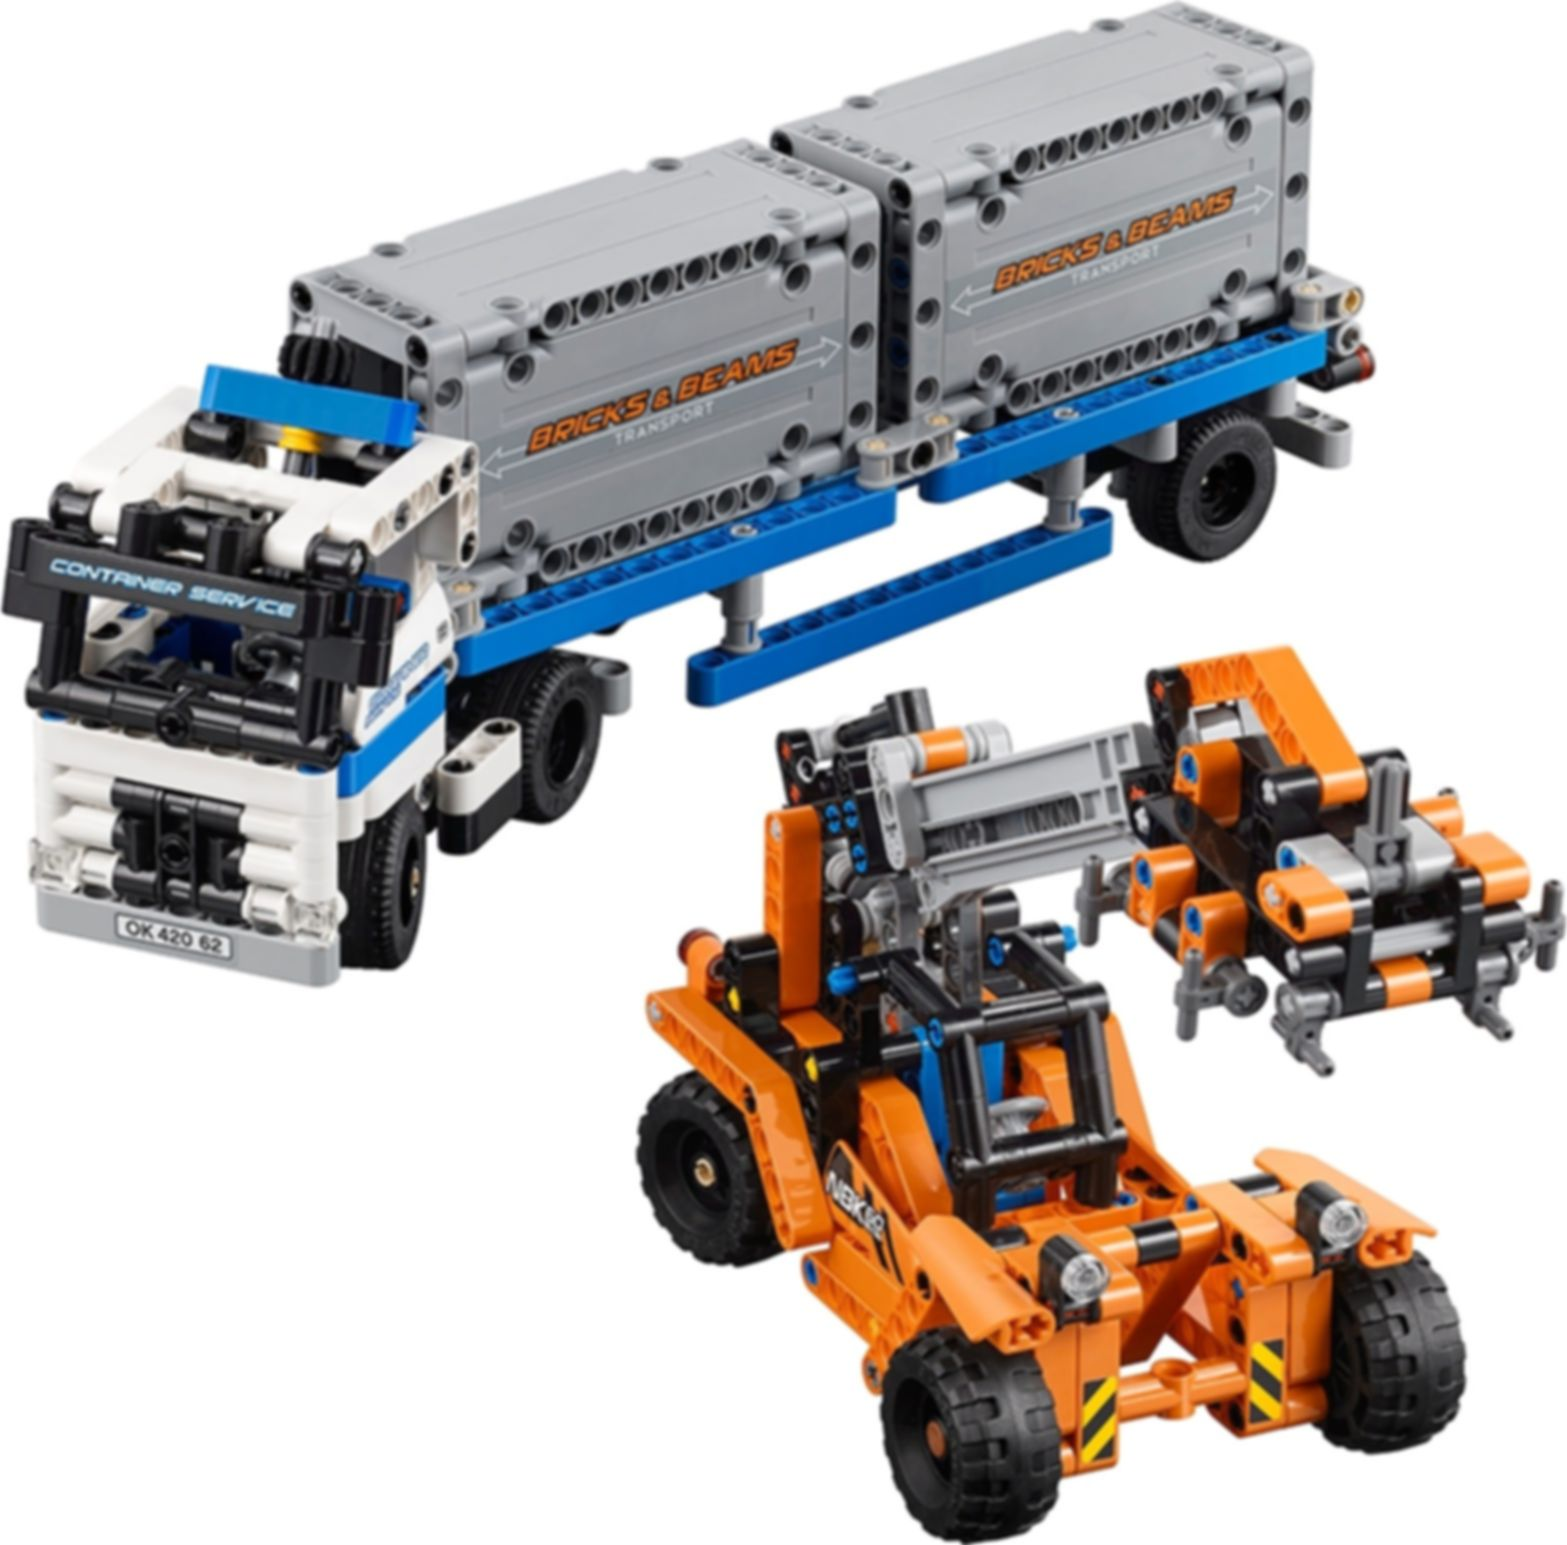 LEGO® Technic Container Yard components